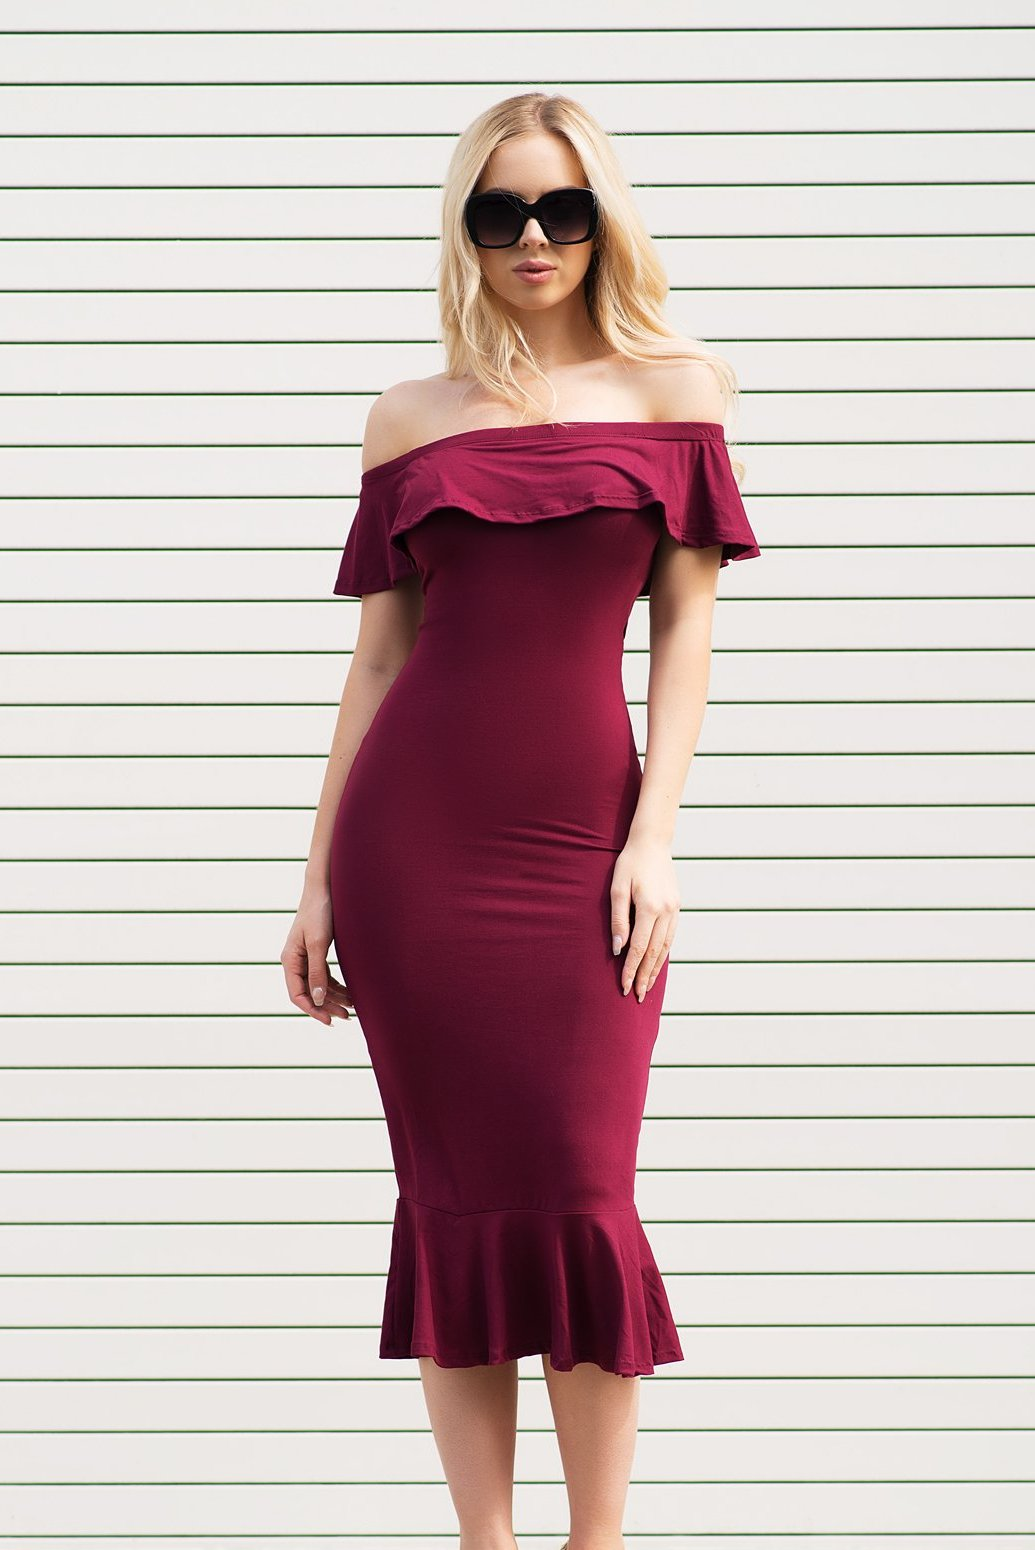 Analia Off Shoulder Dress - Burgundy